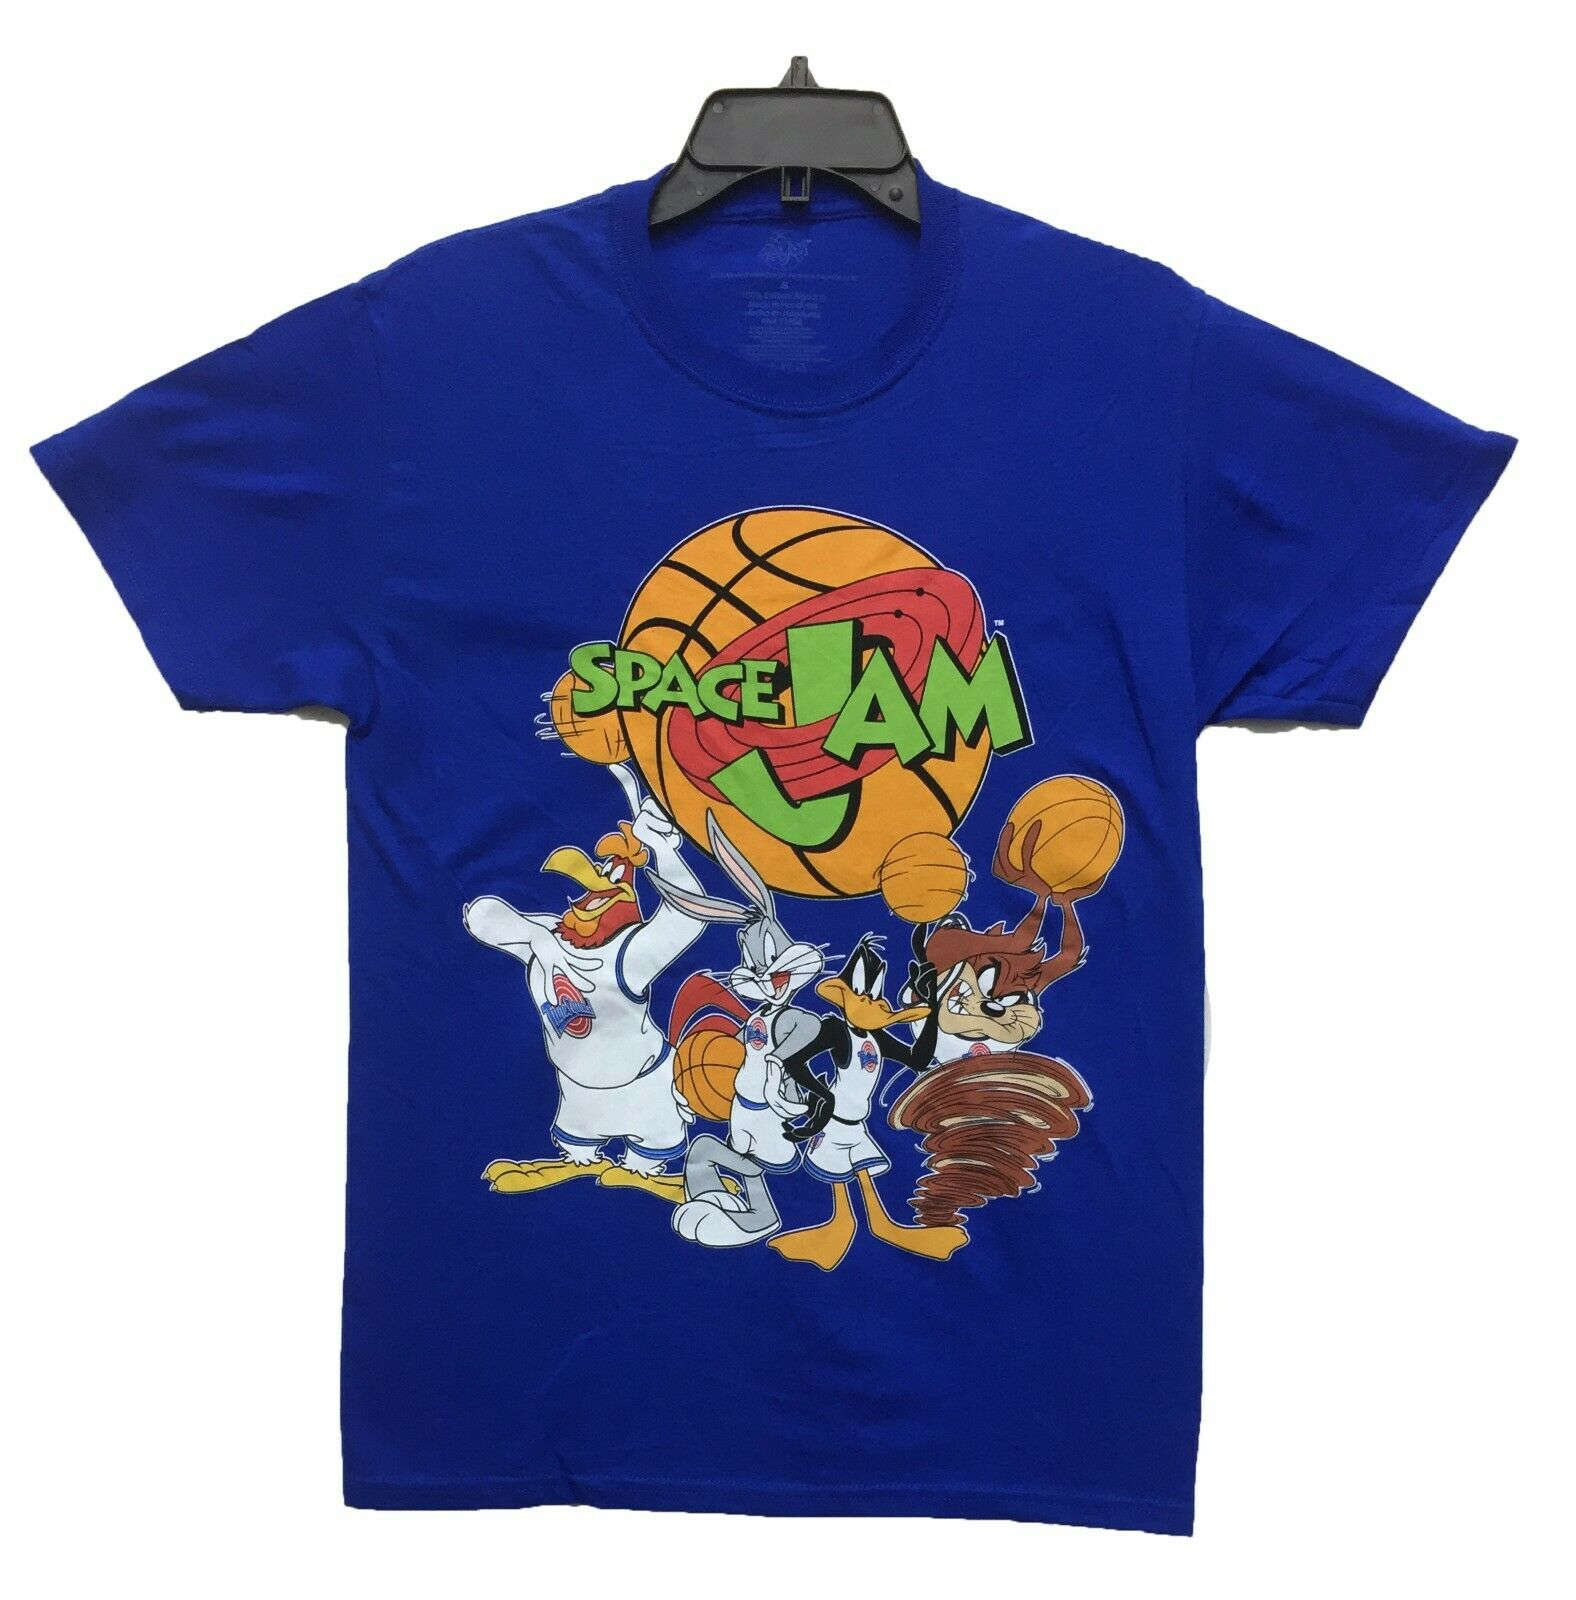 Space Jam Tune Squad Basketball Jersey S-2XL Blue Wile E Coyote #13 Squad